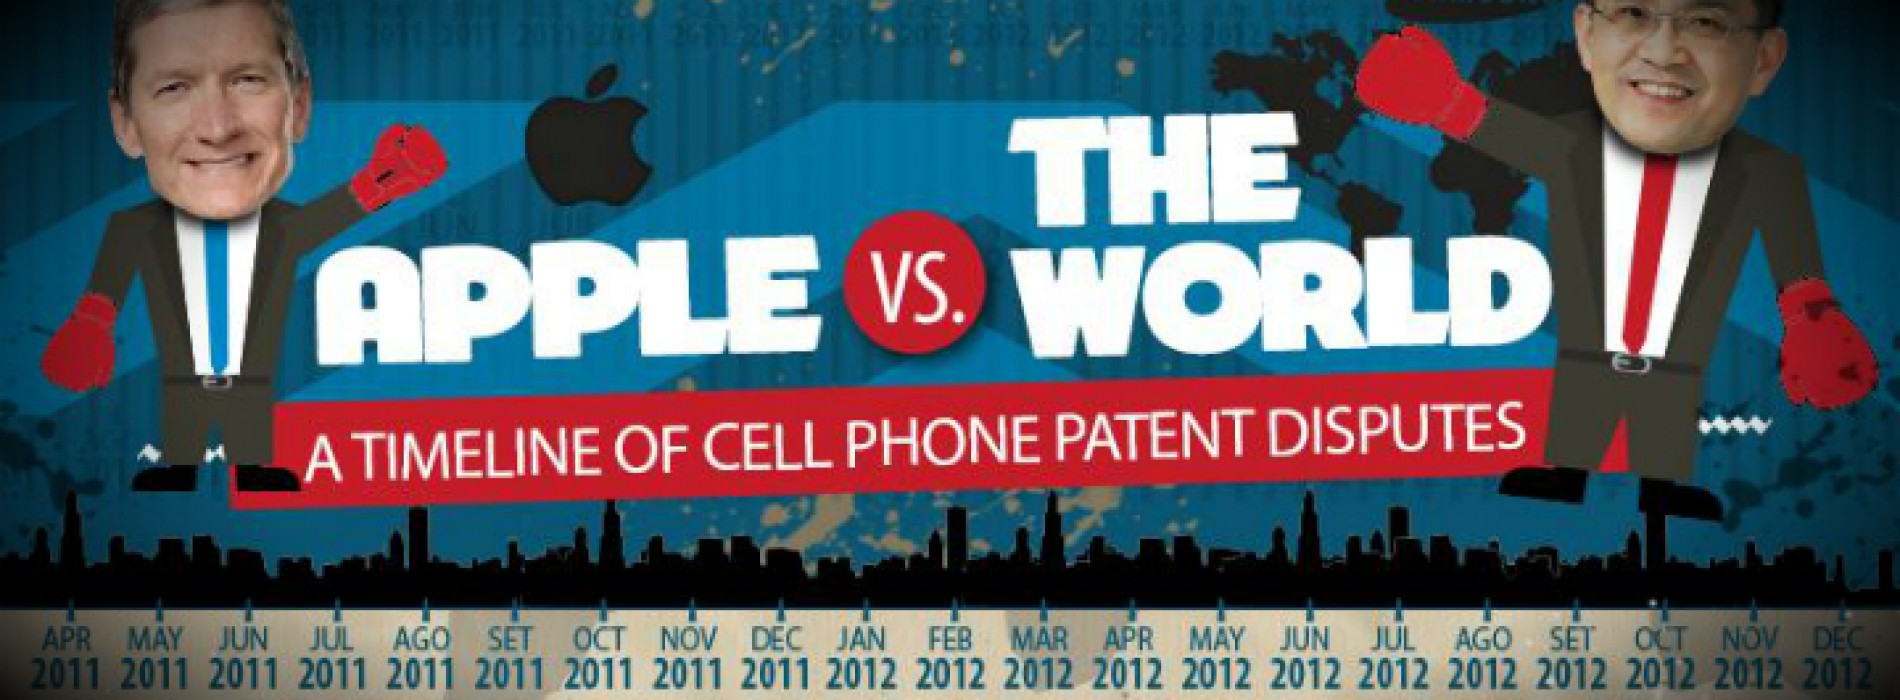 Apple vs. The World: A Timeline of cell phone patent disputes (Infographic)